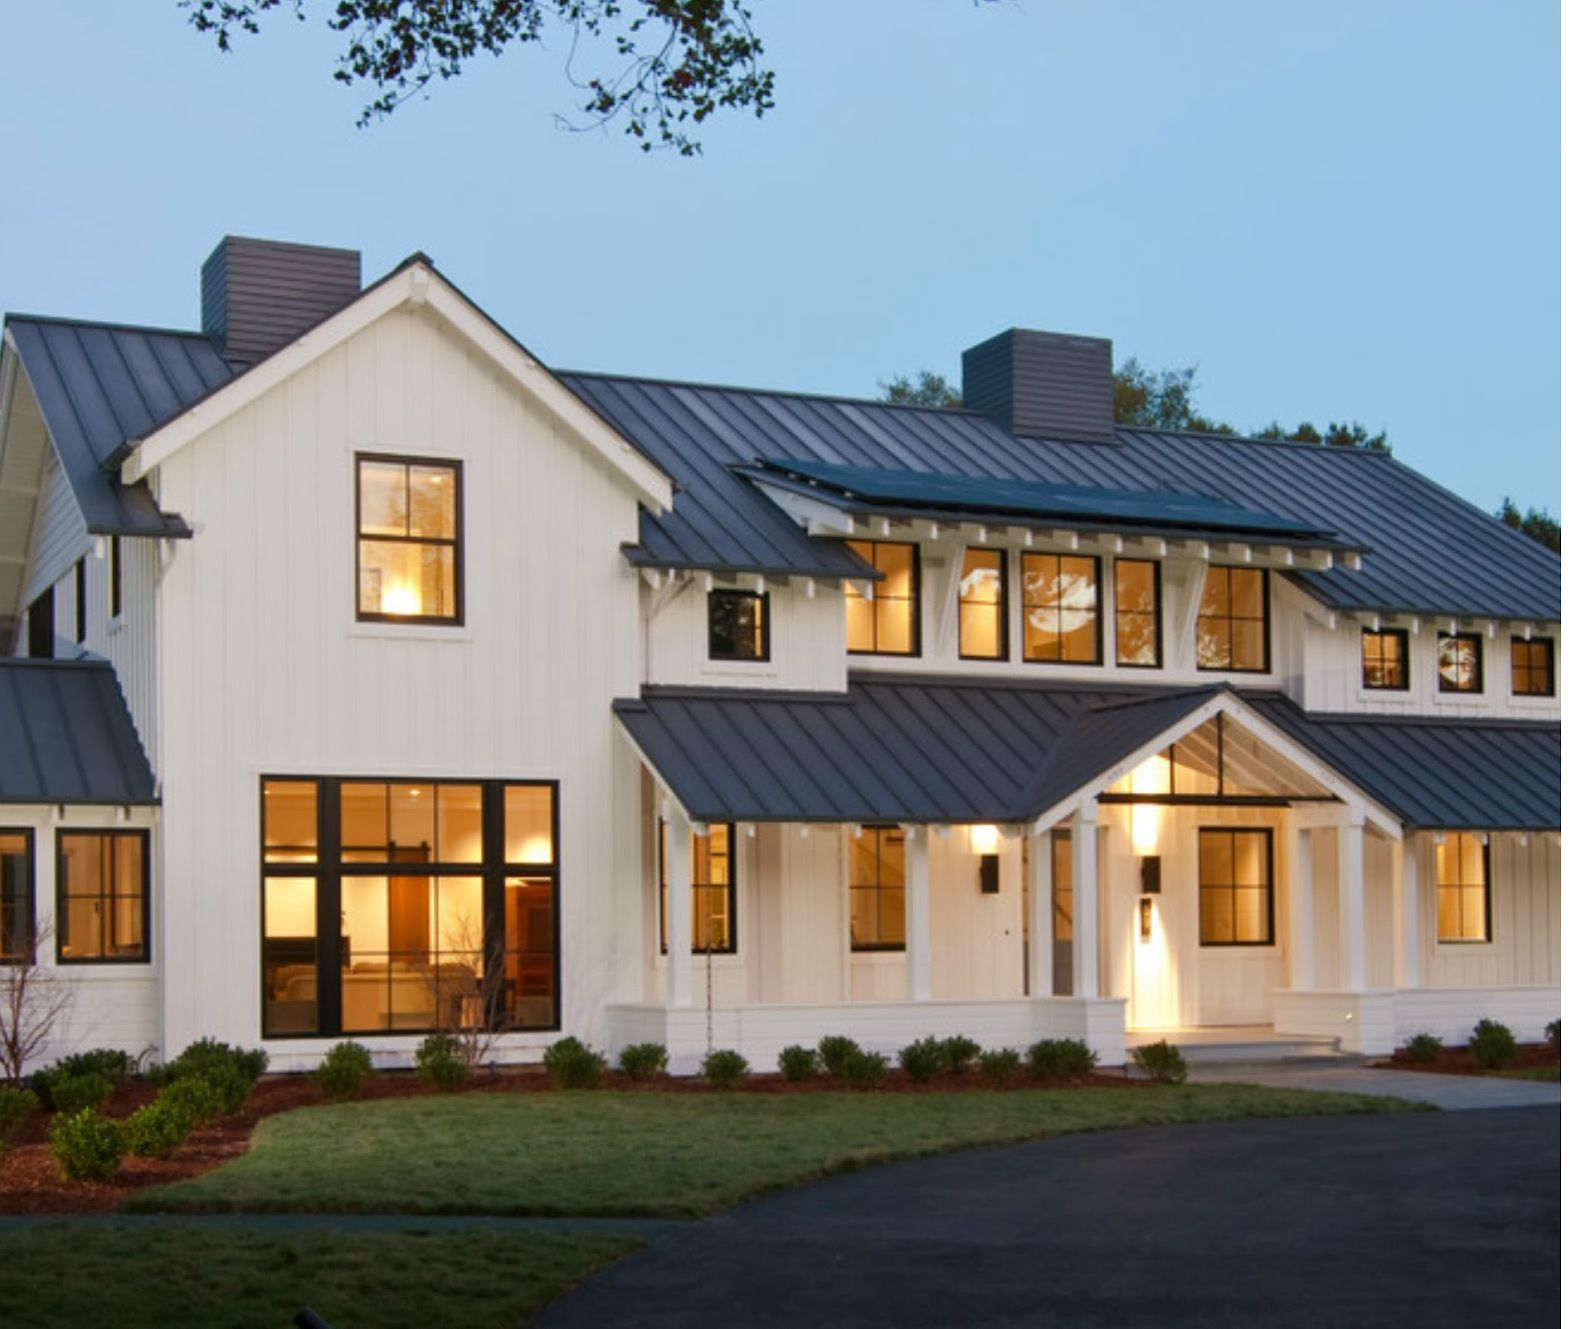 Great looking country house with lots of additive elements changing